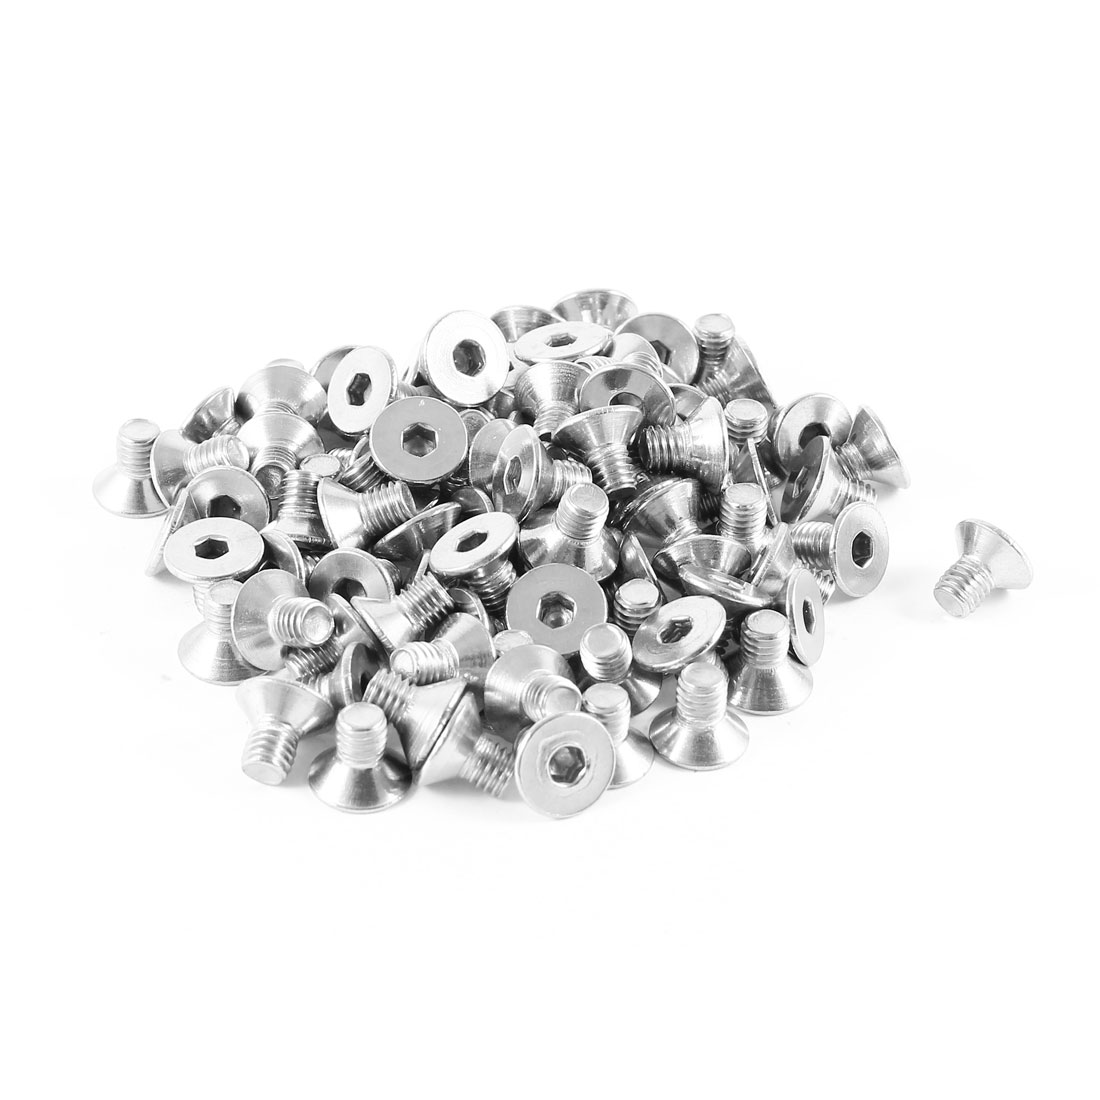 100 Pcs 304HC Stainless Steel Countersunk Flat Head Bolt Screw M5x8mm